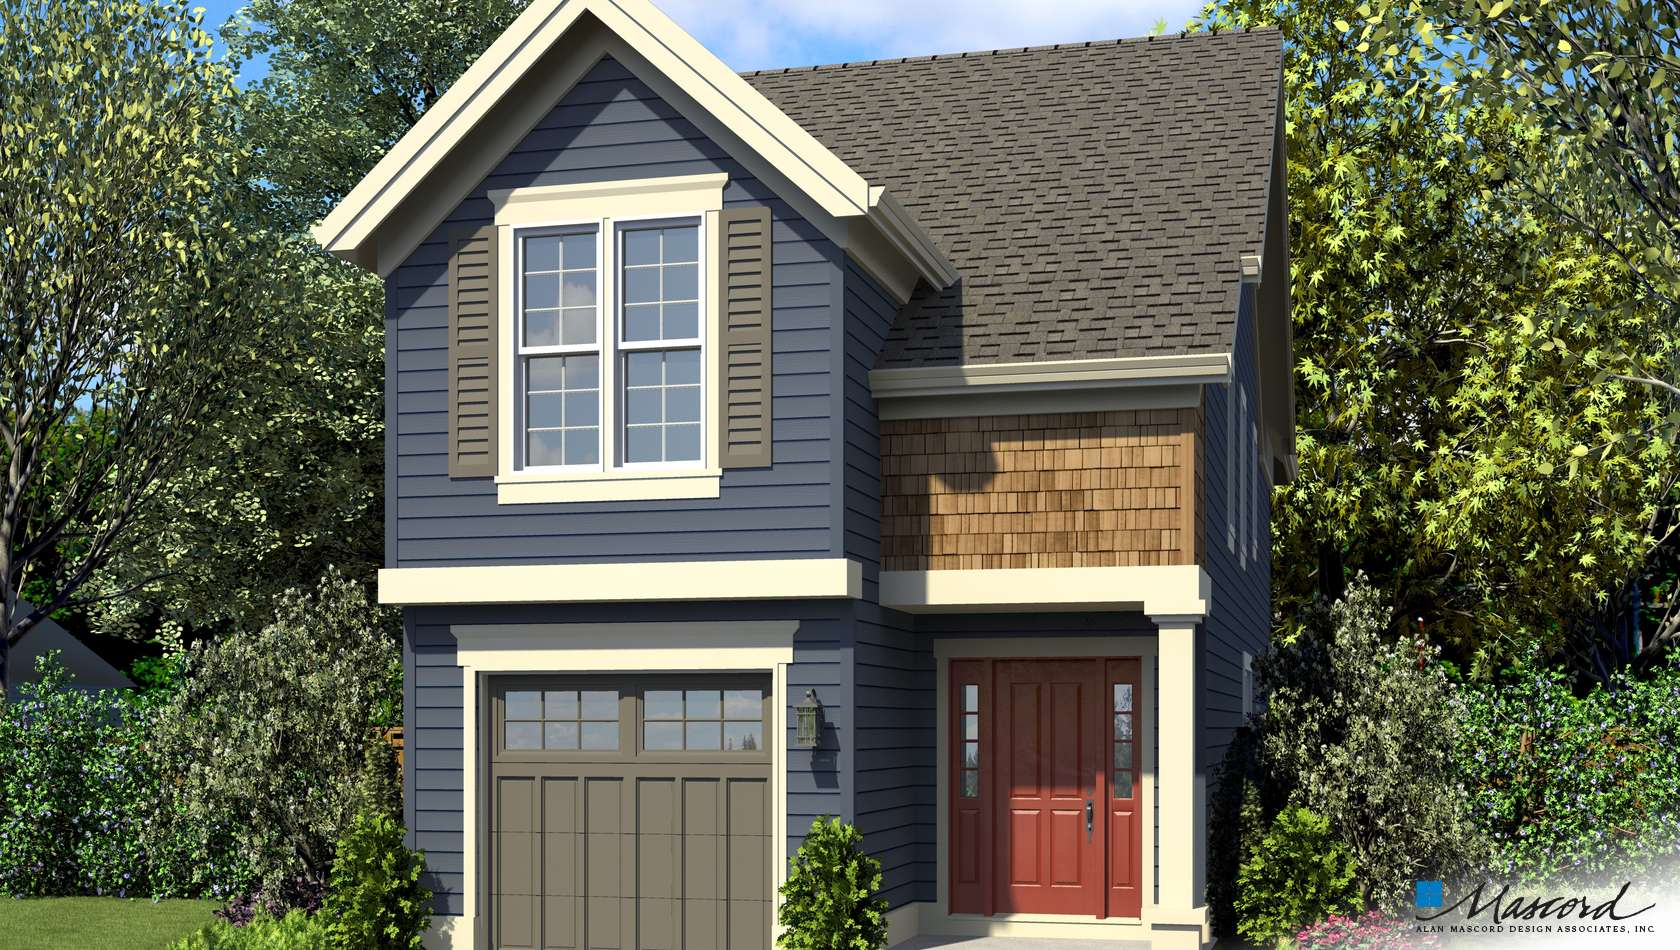 Main image for house plan 21152: The Walterboro